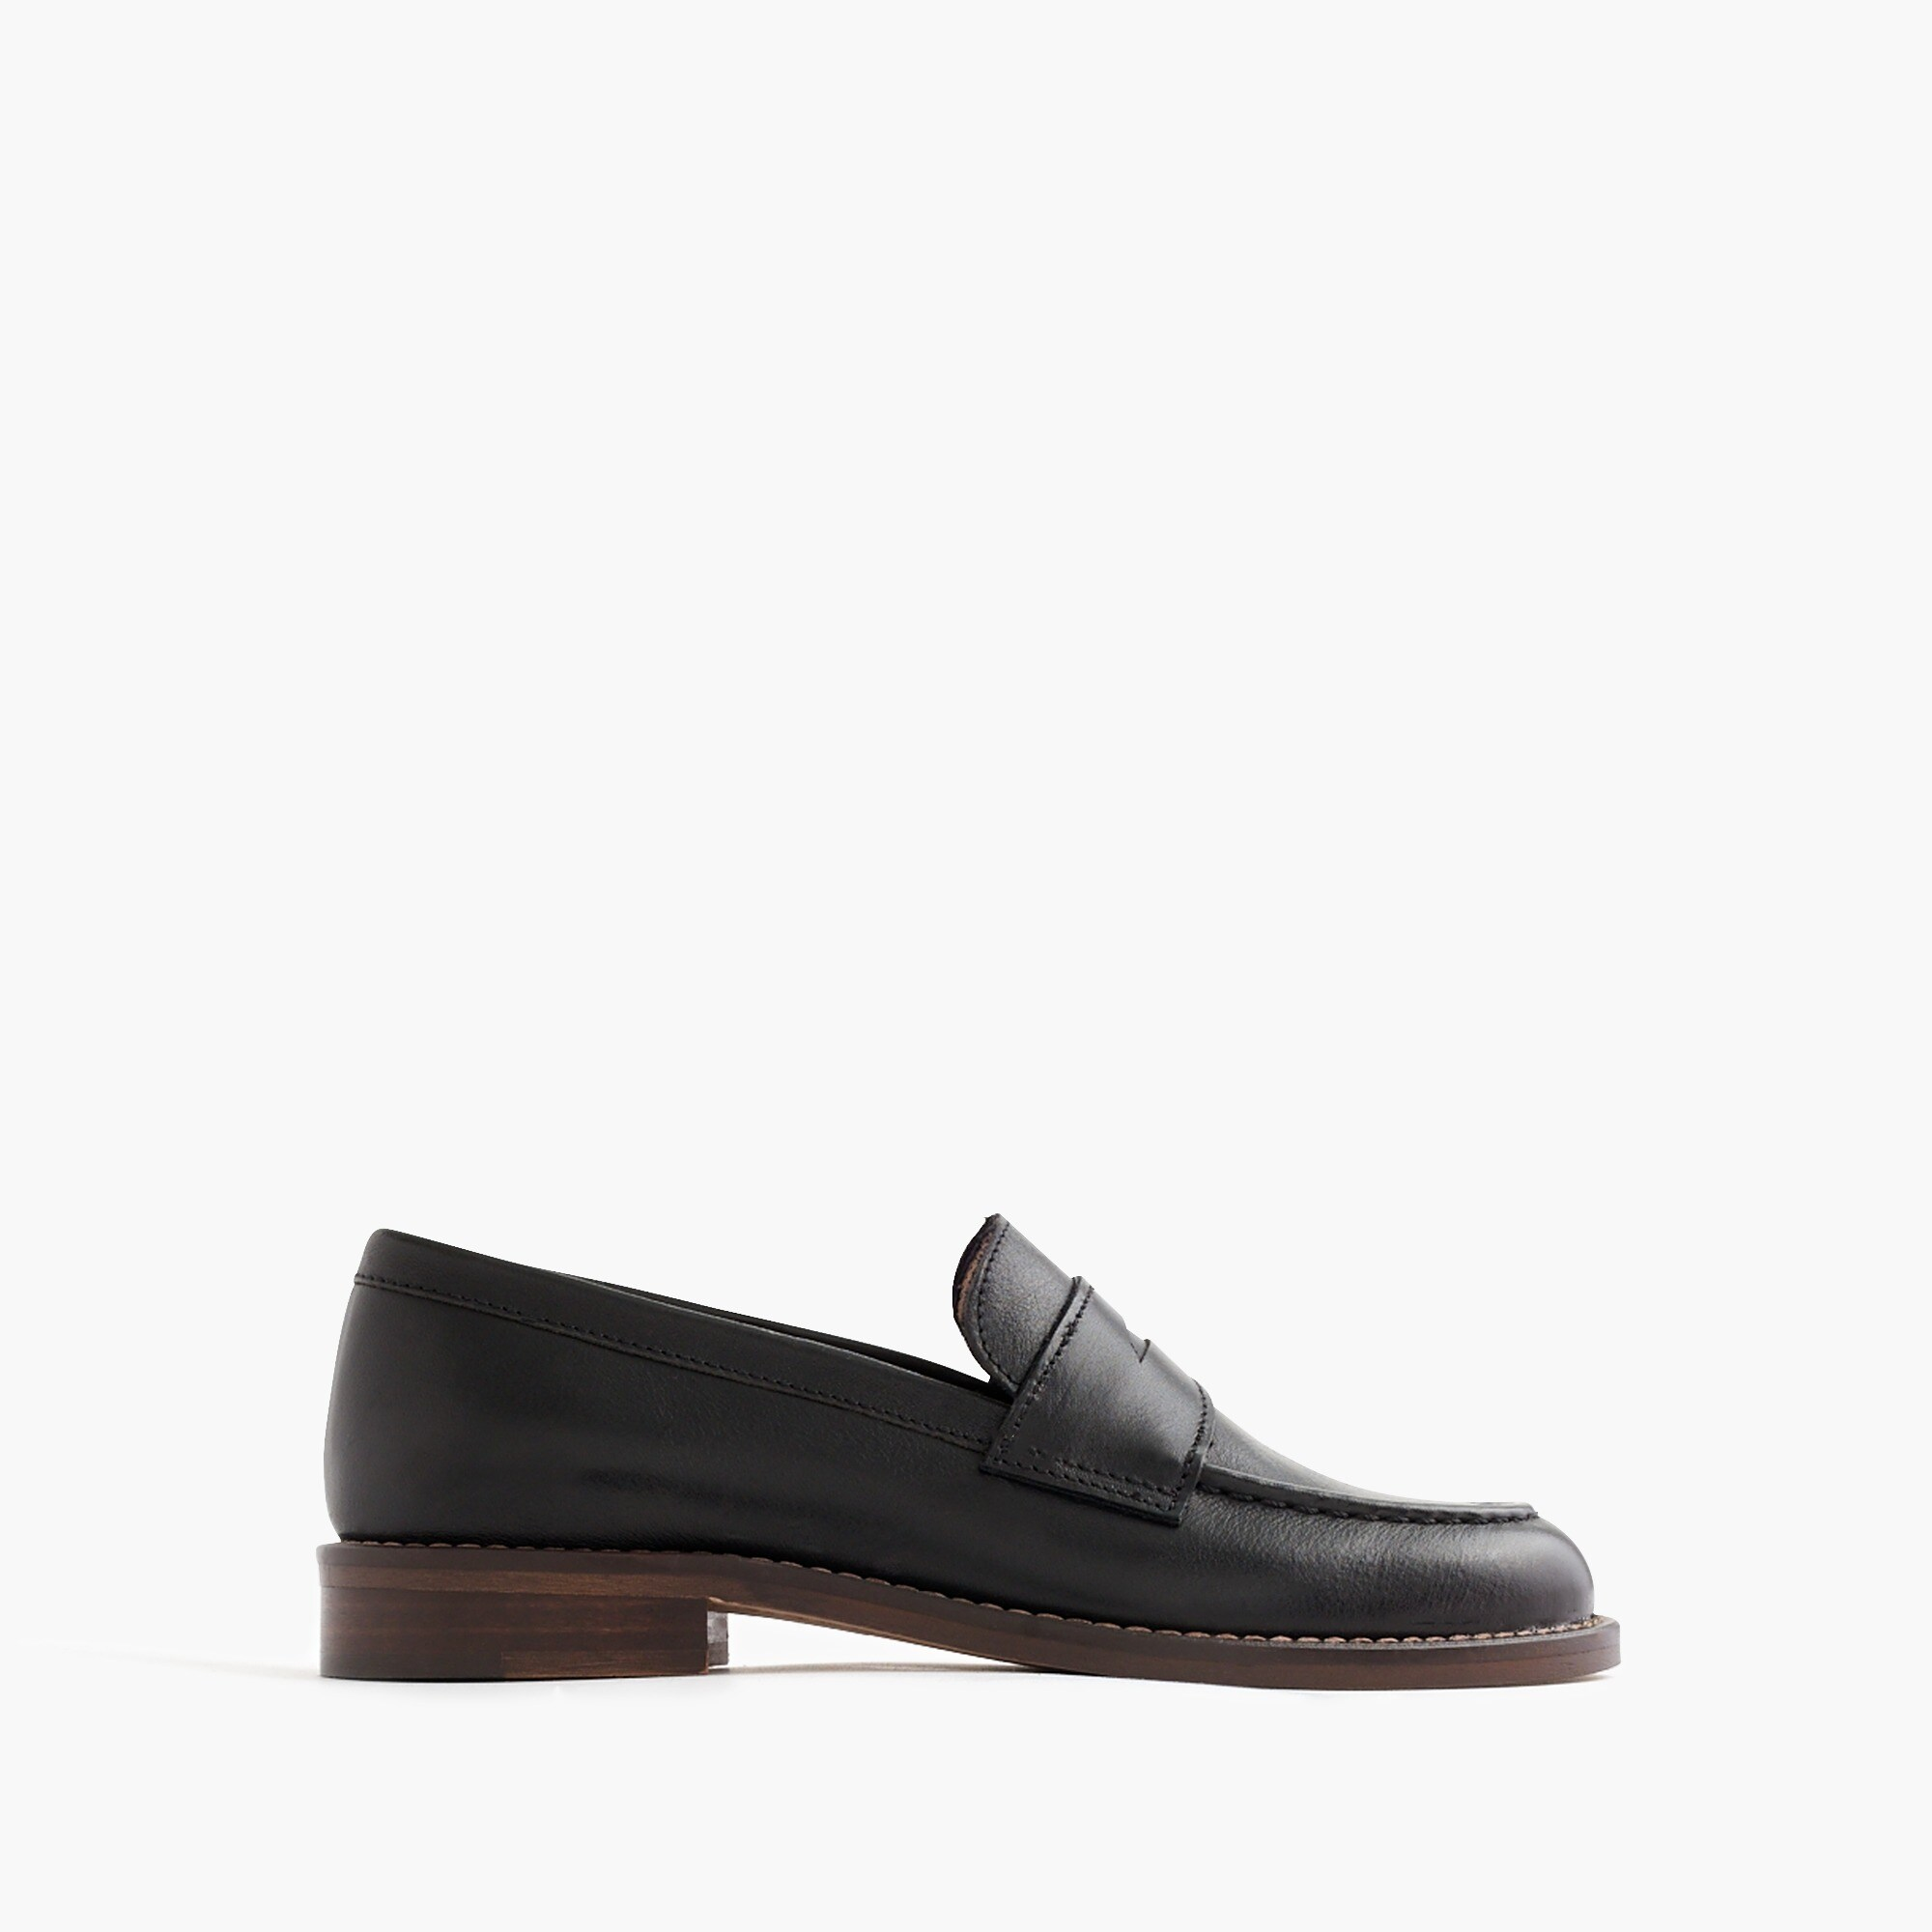 Image 2 for Kids' penny loafers